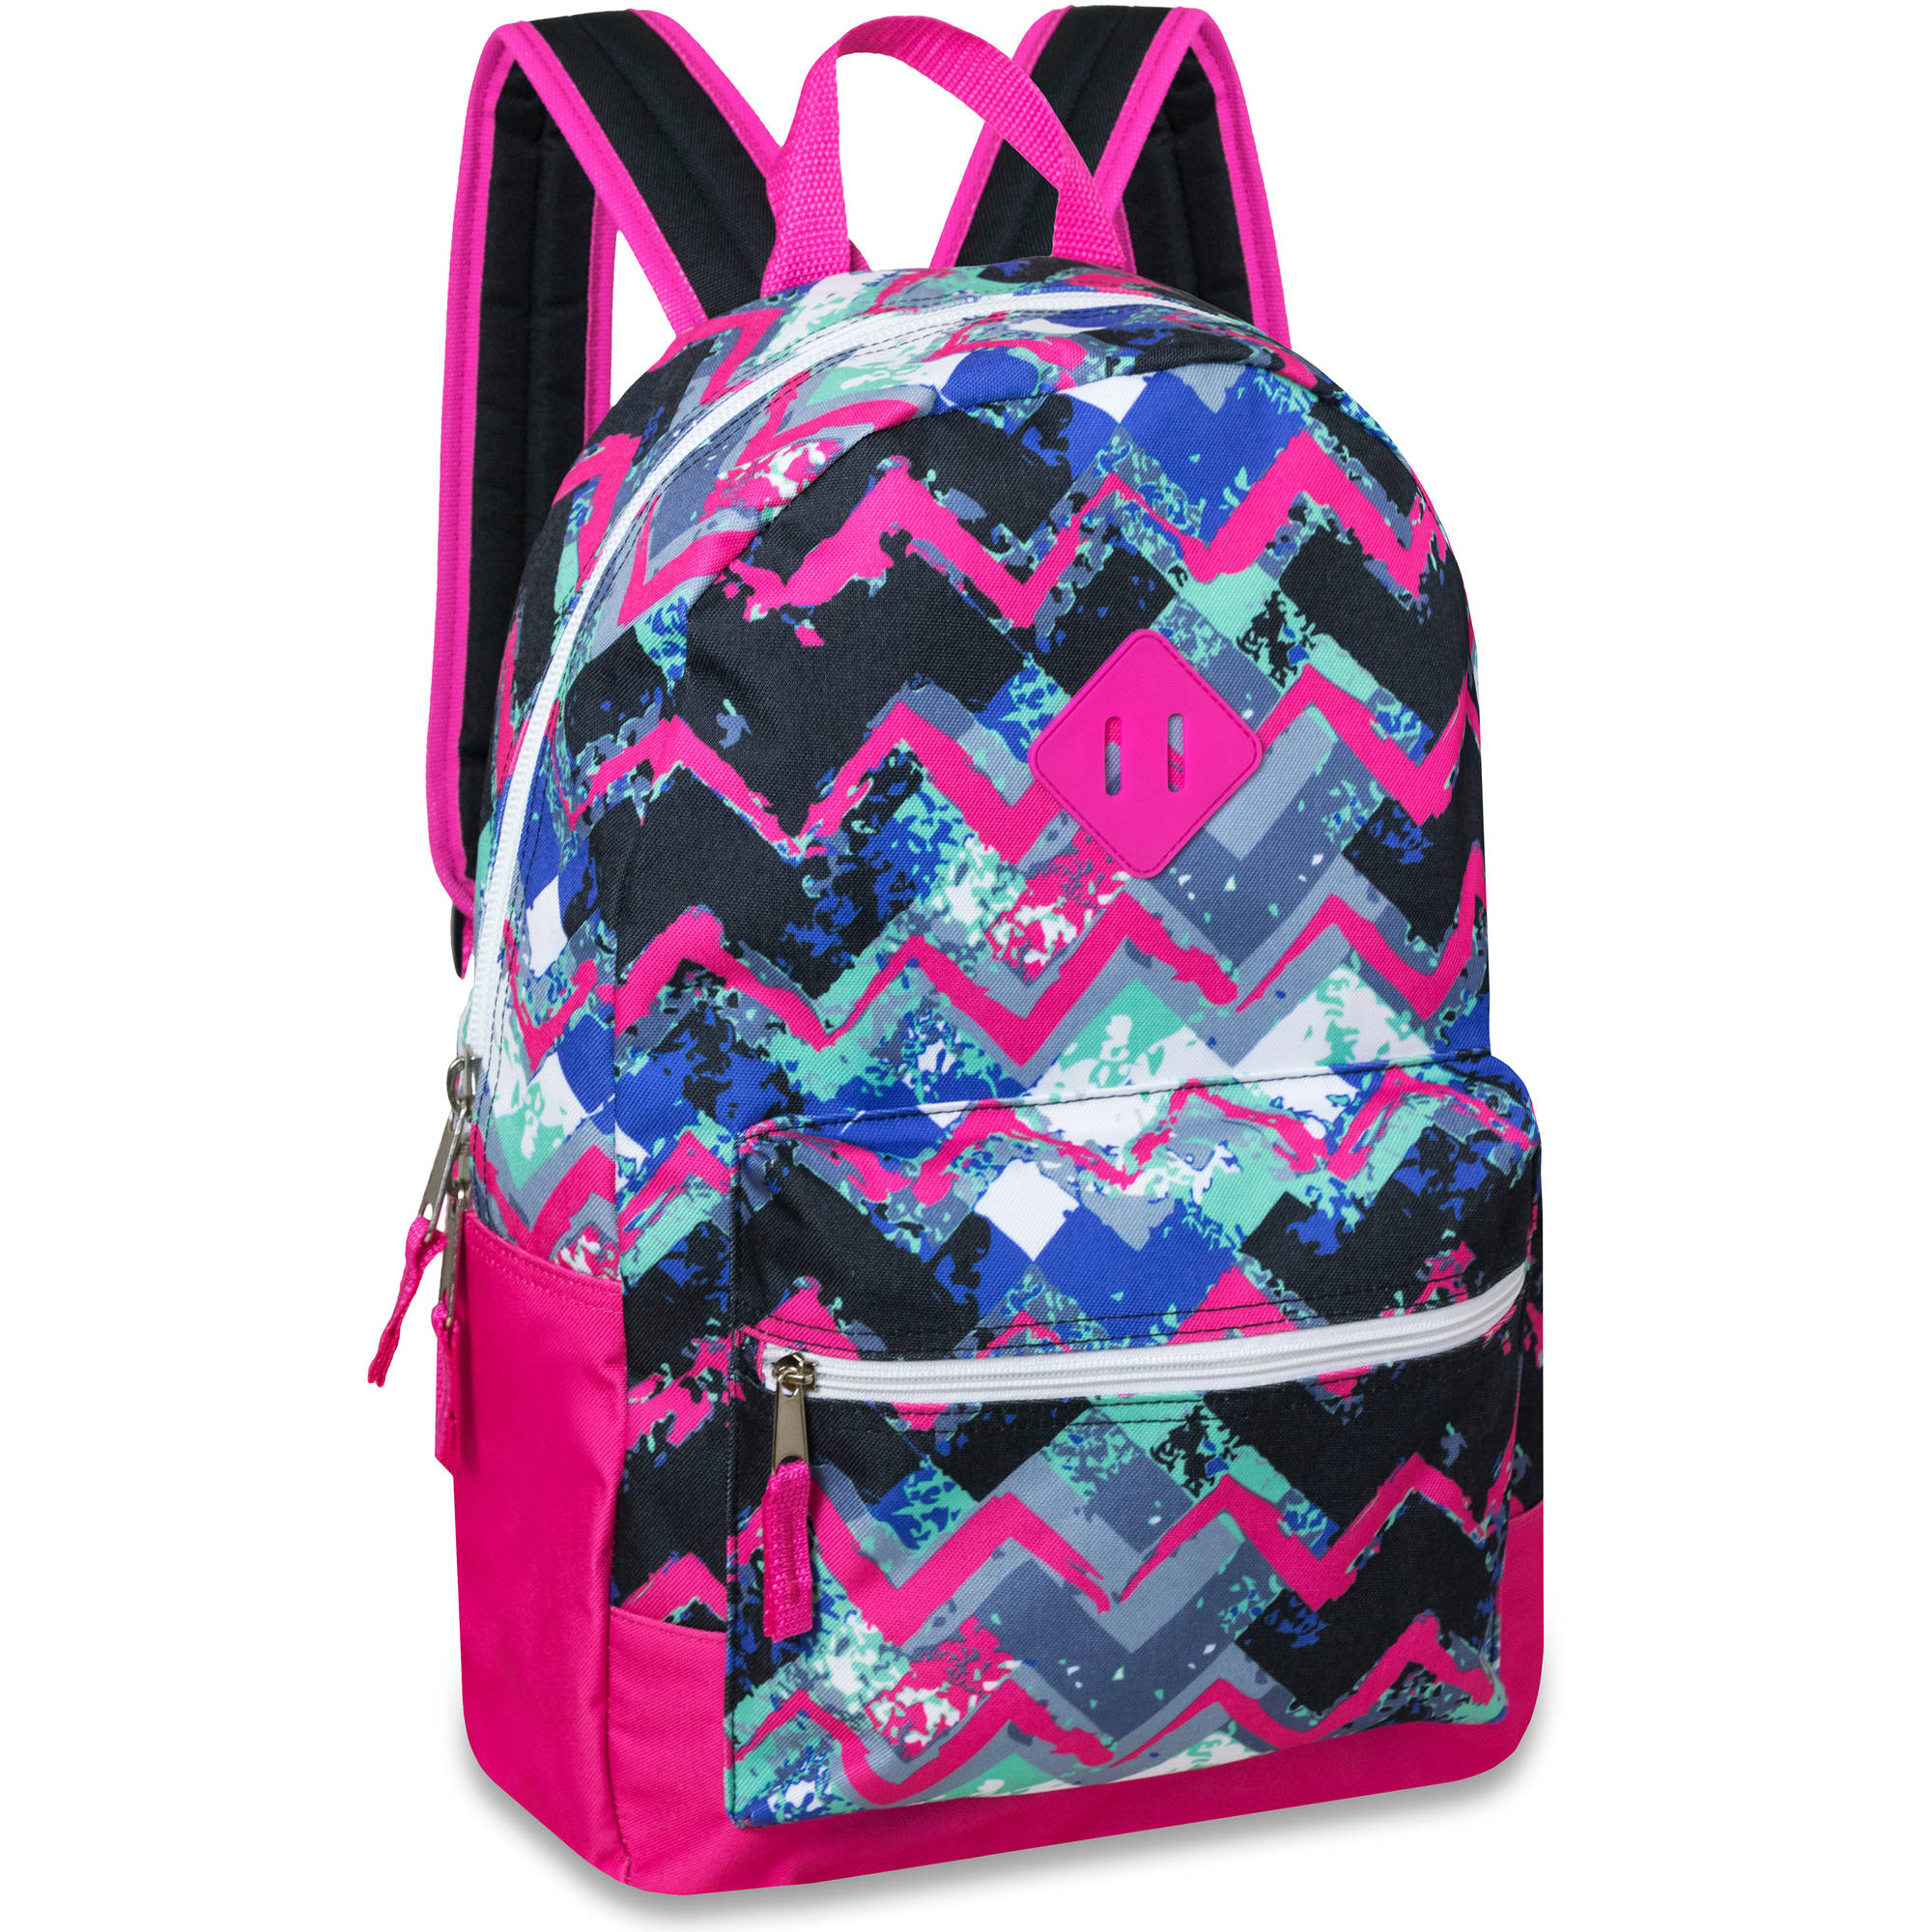 17 Inch Chevron Printed Backpack with Front Accessory Pocket